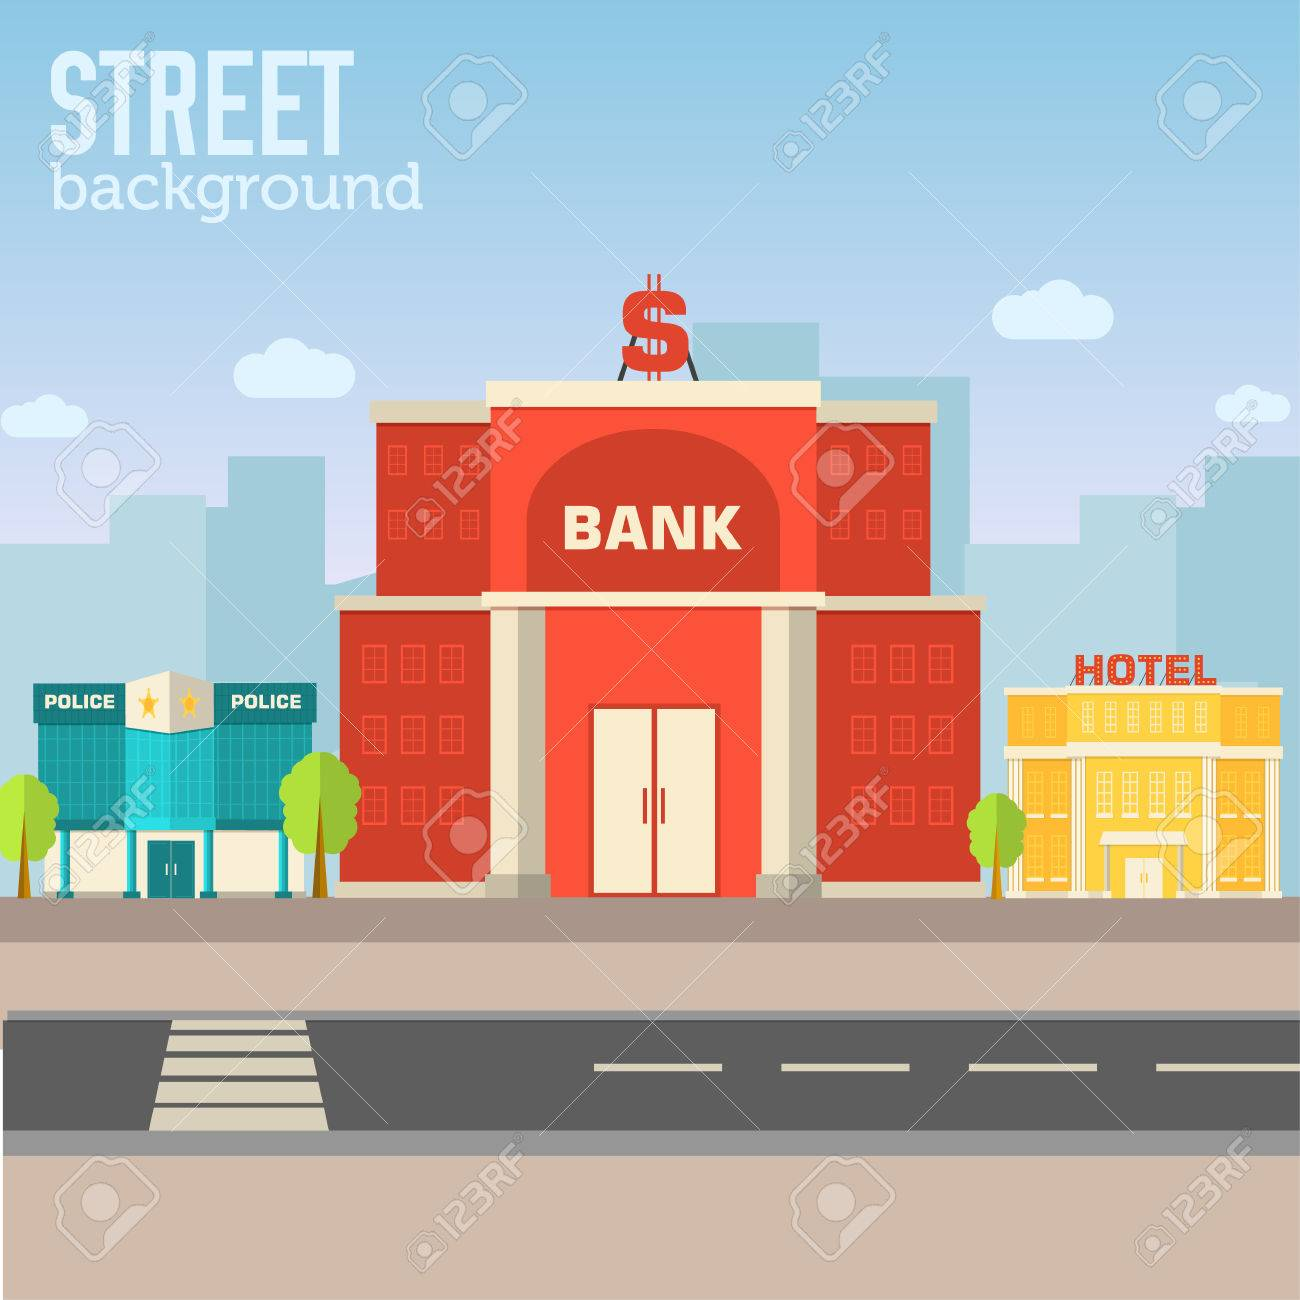 bank building in city space with road on flat syle background - 38991377